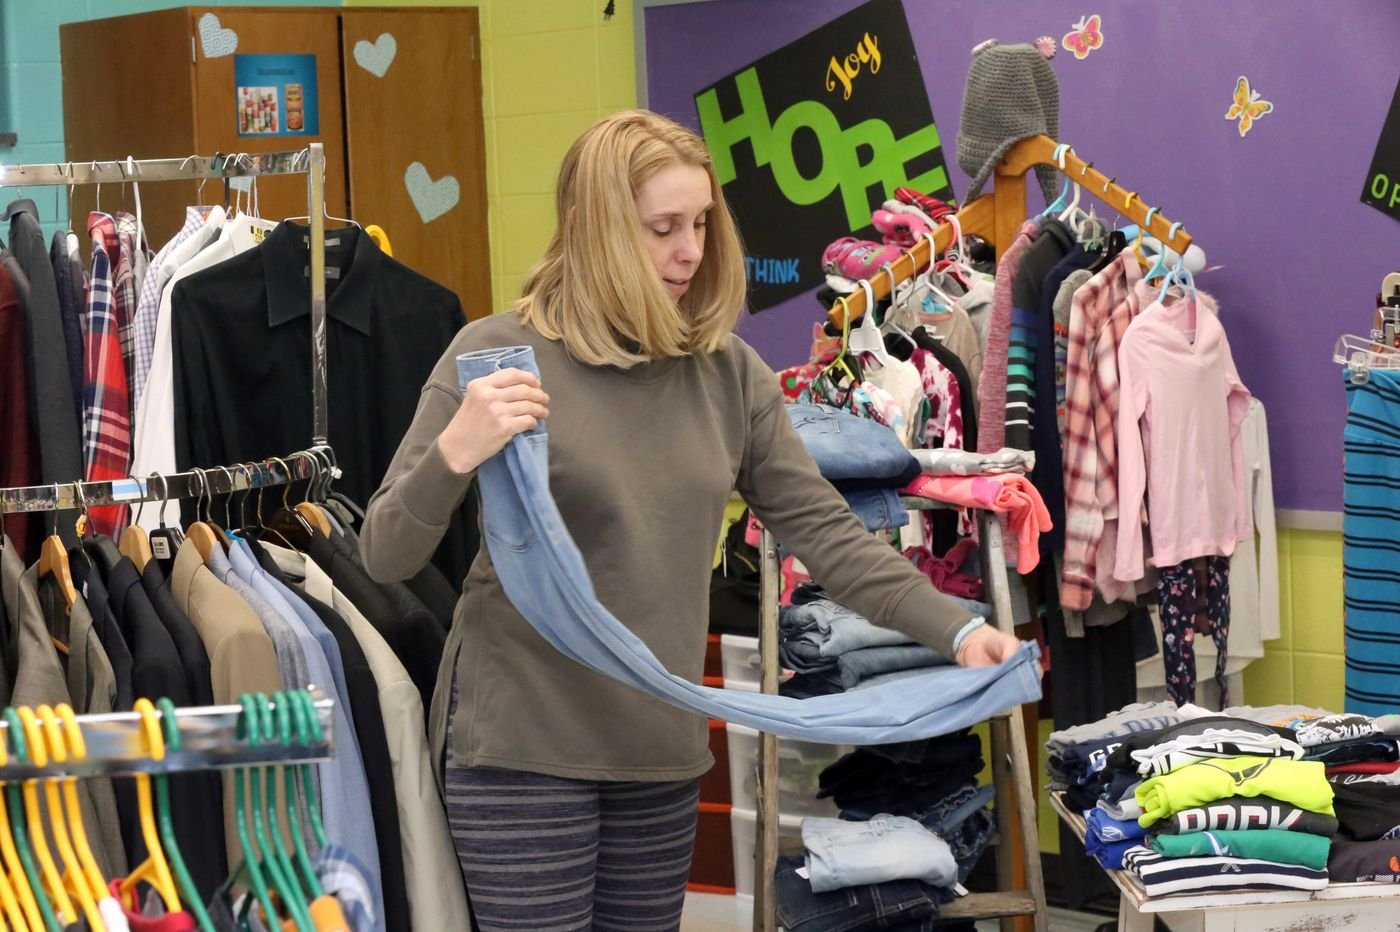 A New Jersey school district will wash and fold students' clothes to keep kids in class